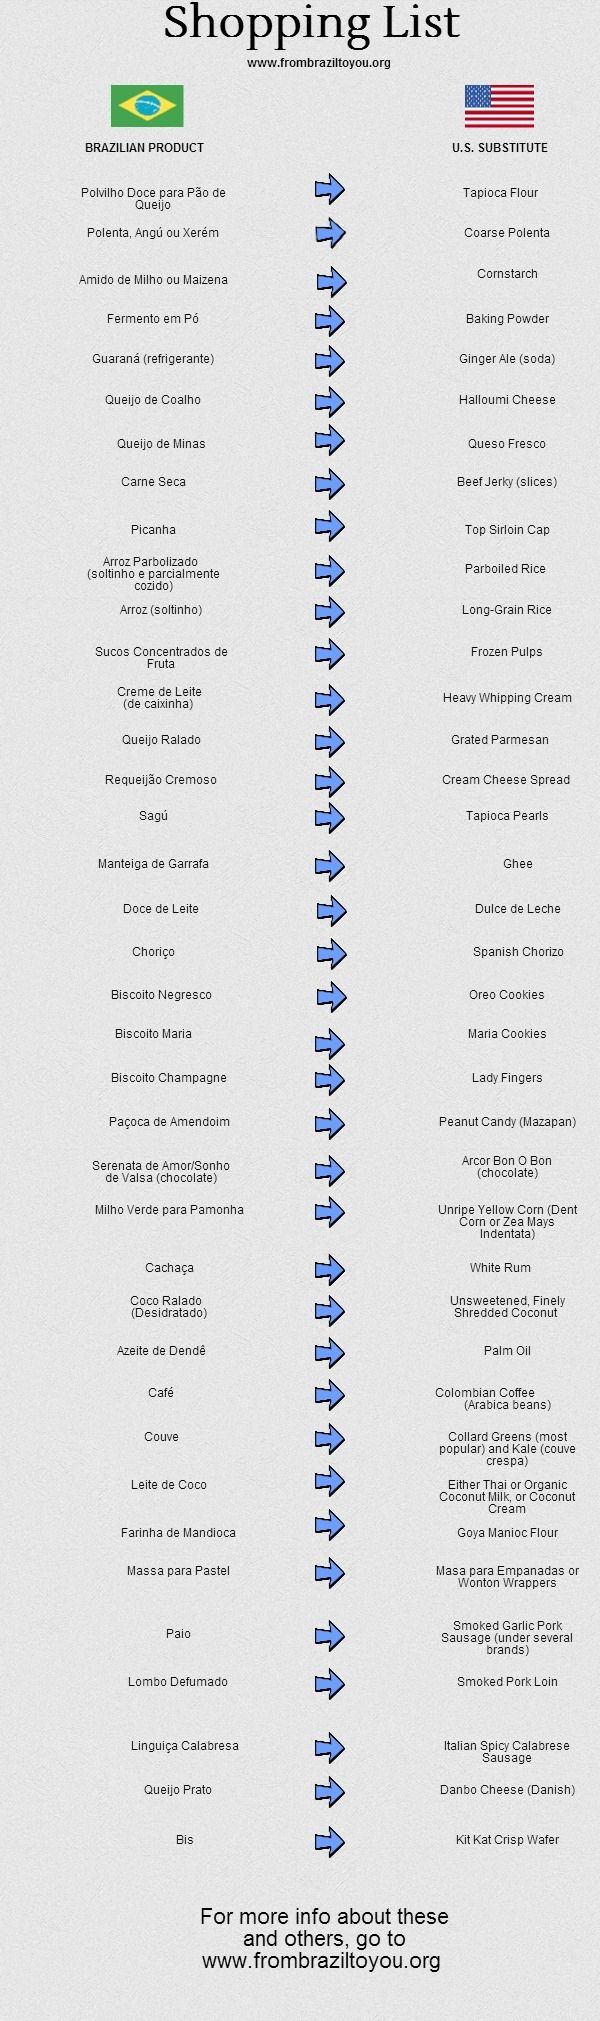 Useful List of Brazilian Food Products with their American Substitutes - From Brazil To You